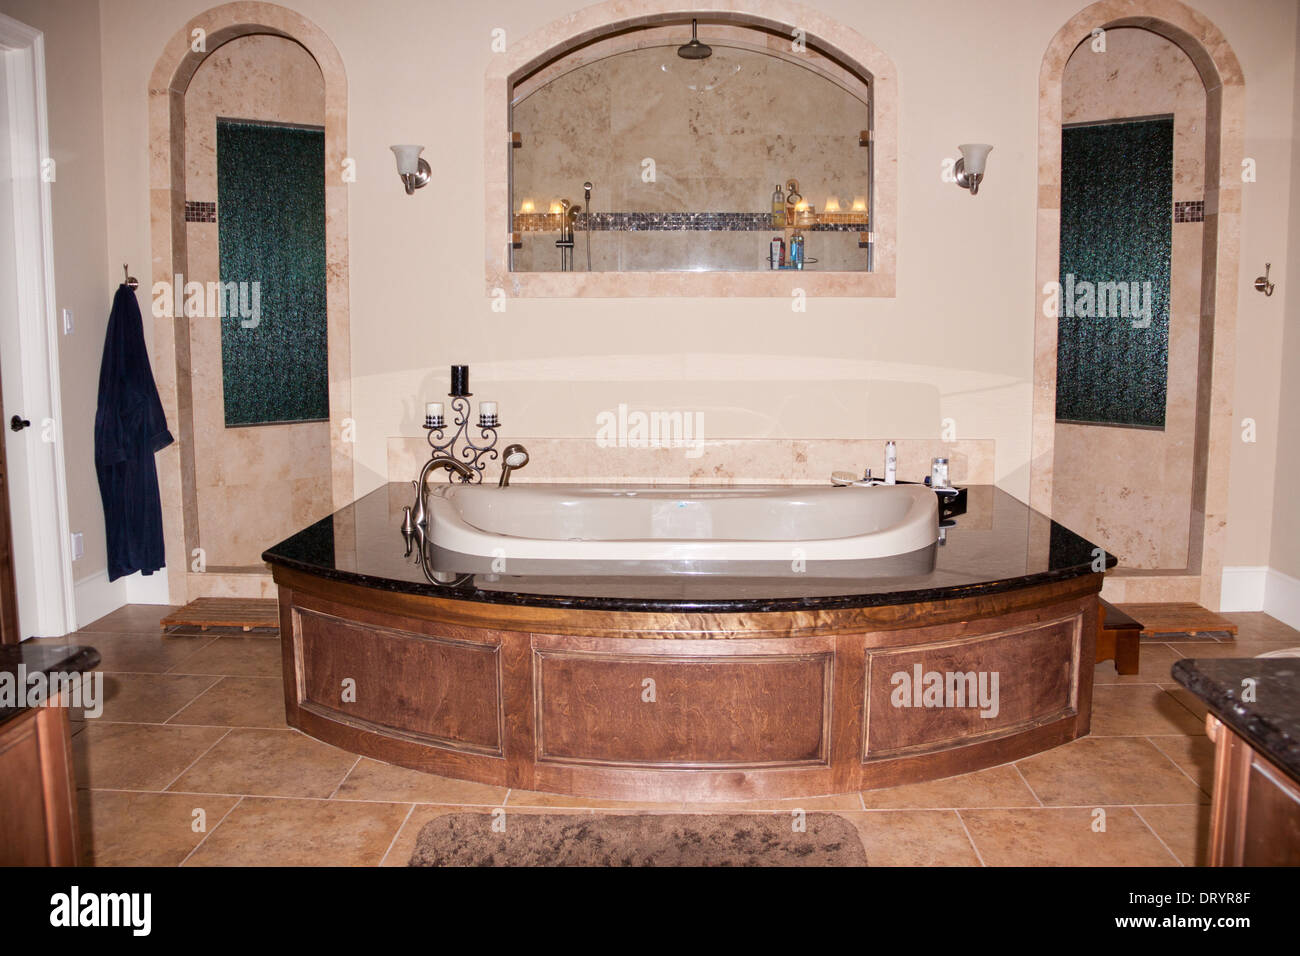 Jacuzzi Bathtub in front of walk-through shower in luxury custom ...